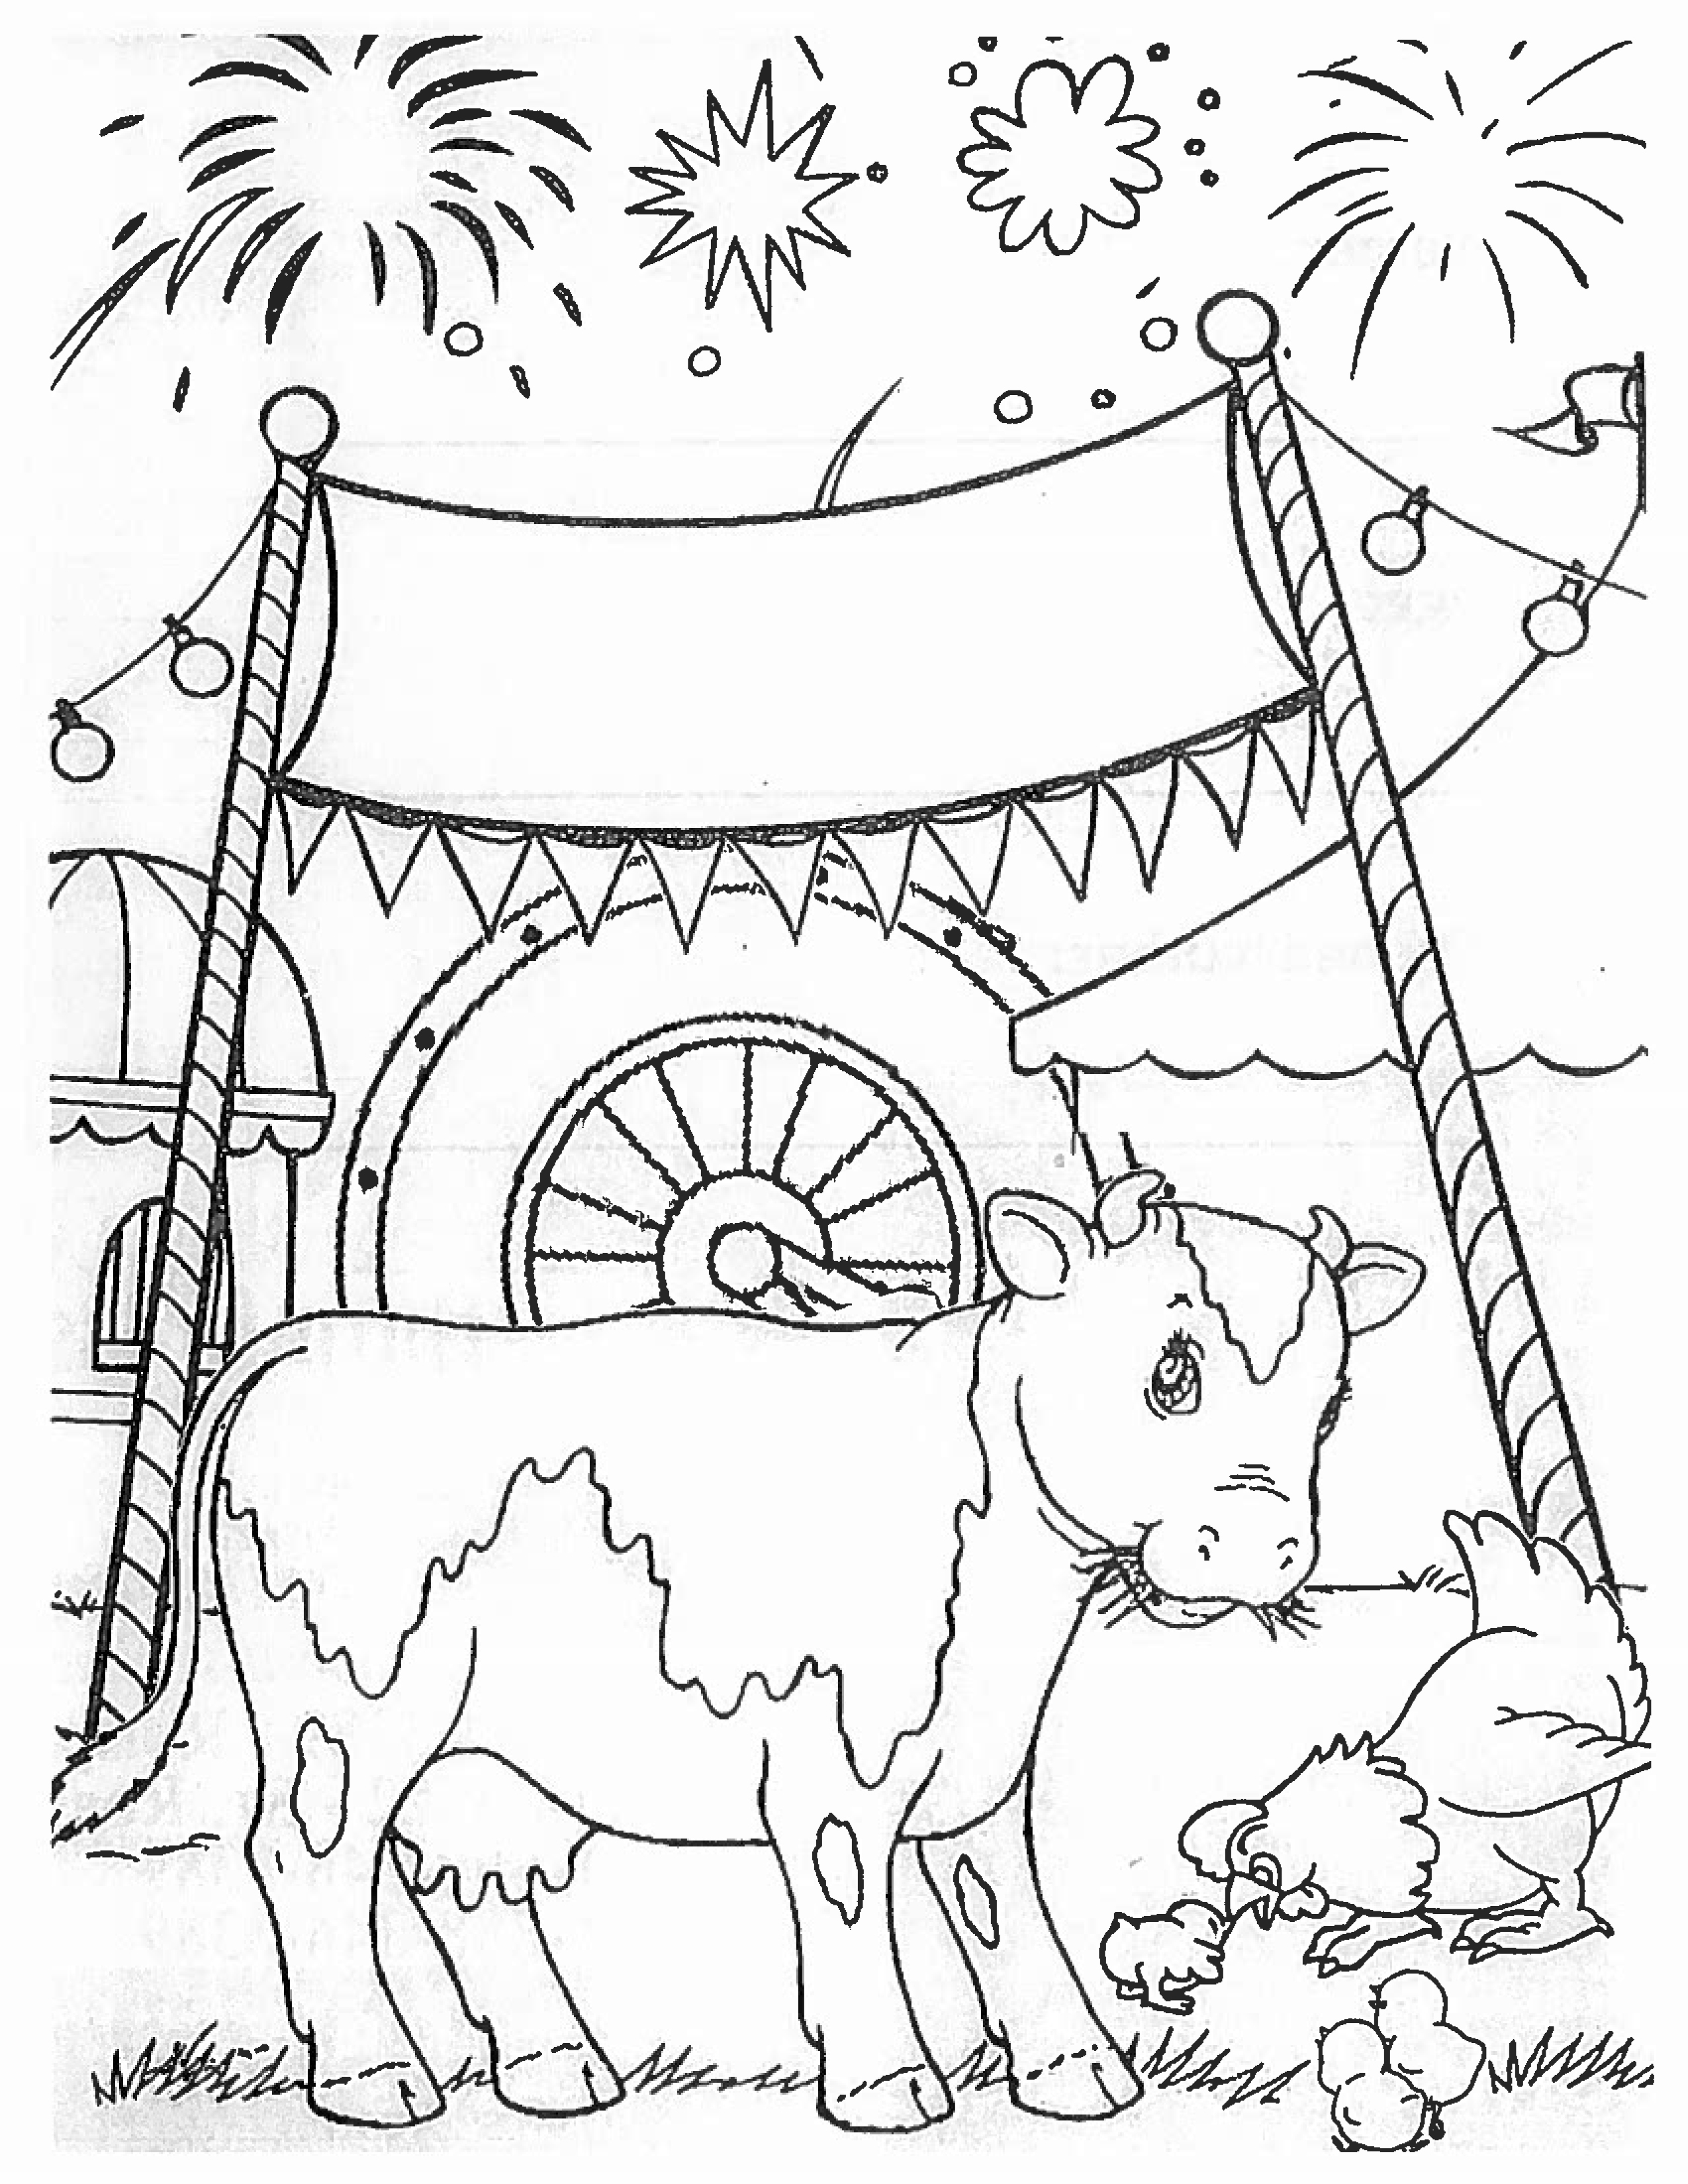 Iowa Coloring Pages At Getdrawings Com Free For Personal Use Iowa